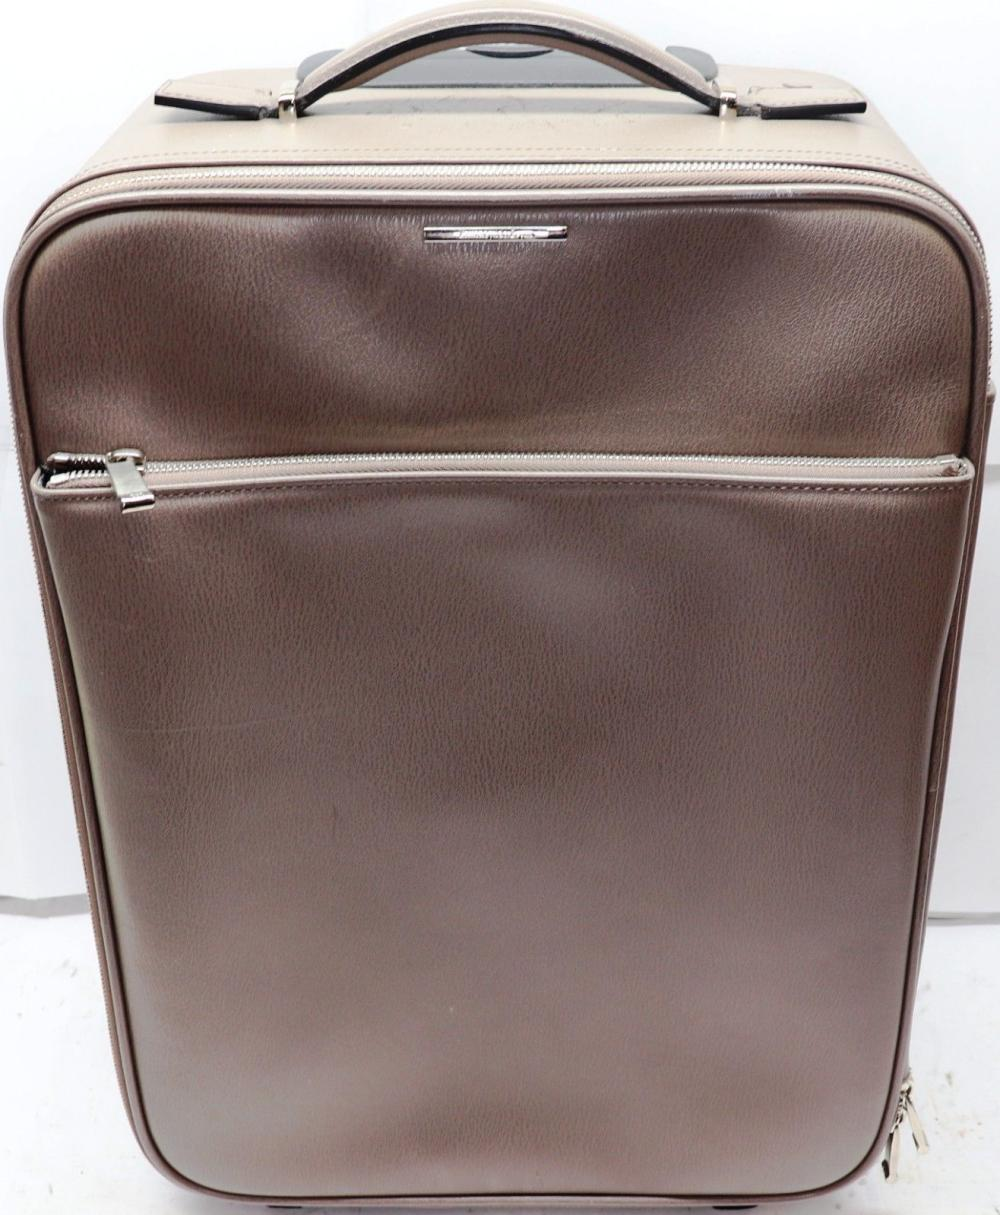 Lot 146: Ermenegildo Zegna Maserati Collect Travel Trolley Carry On Bag Espresso Brown Leather